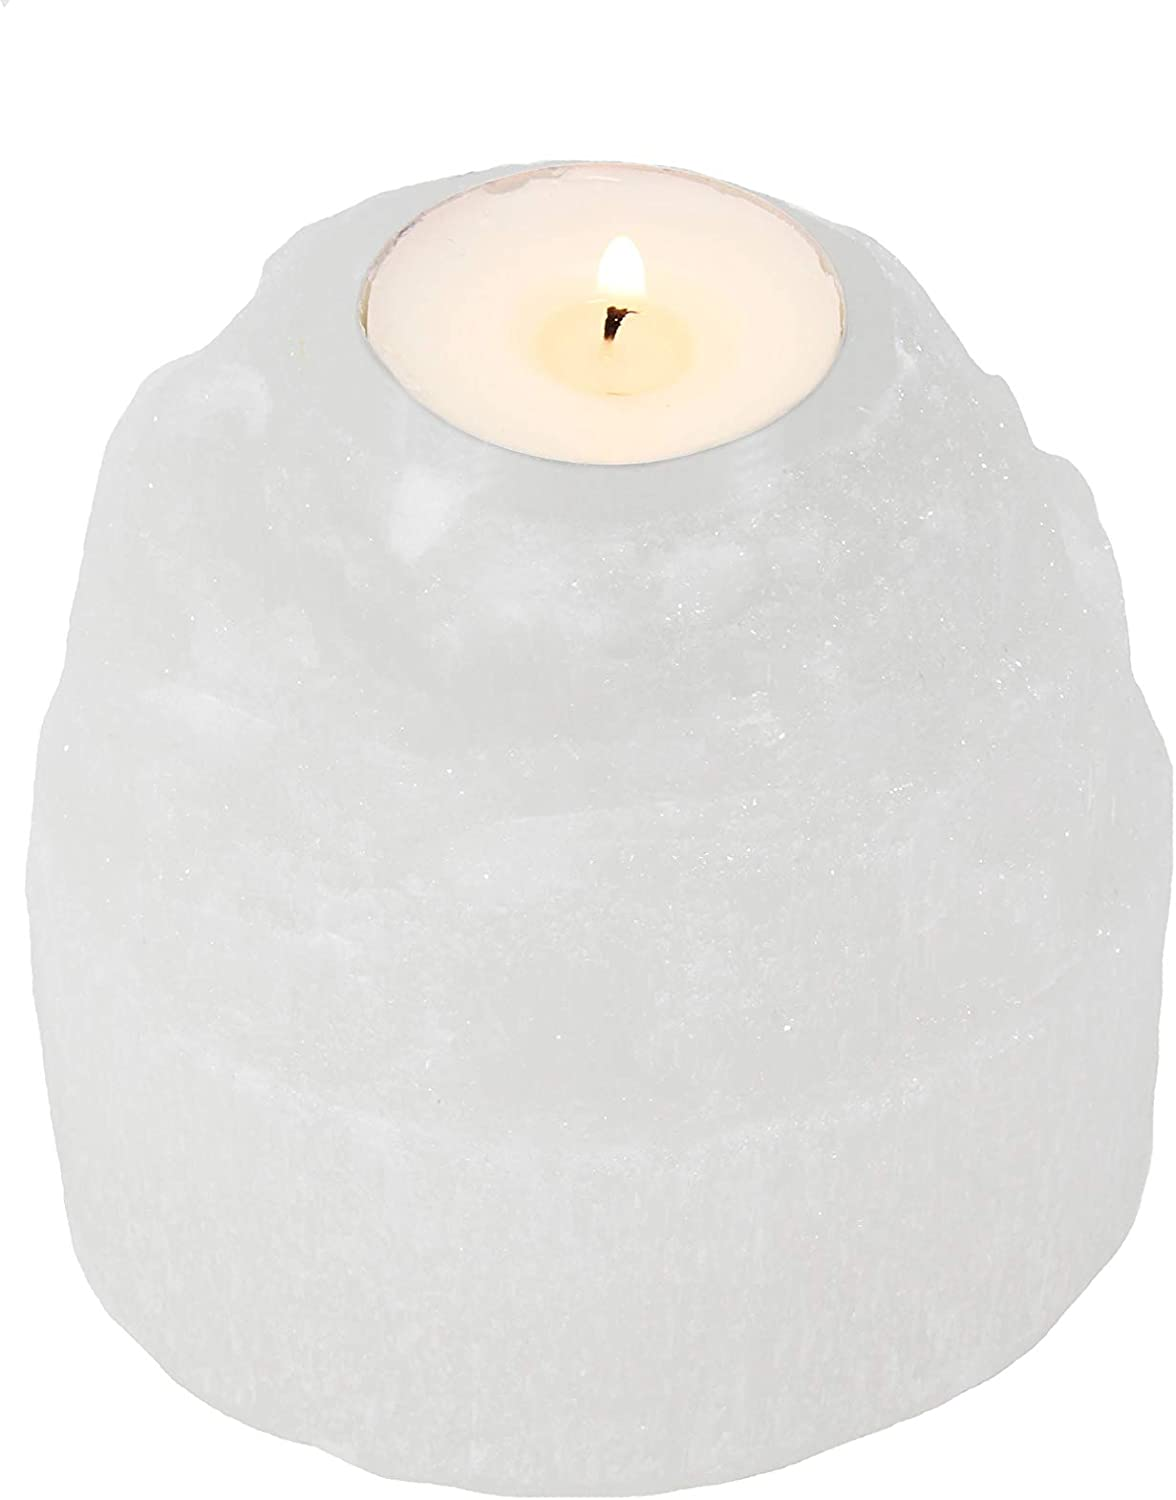 Dey Designs Selenite Tower Candle Holders - Healing Crystals - Crystal Healing - Home Décor - Natural Rough Selenite Stone - Tea Light Candle Holder